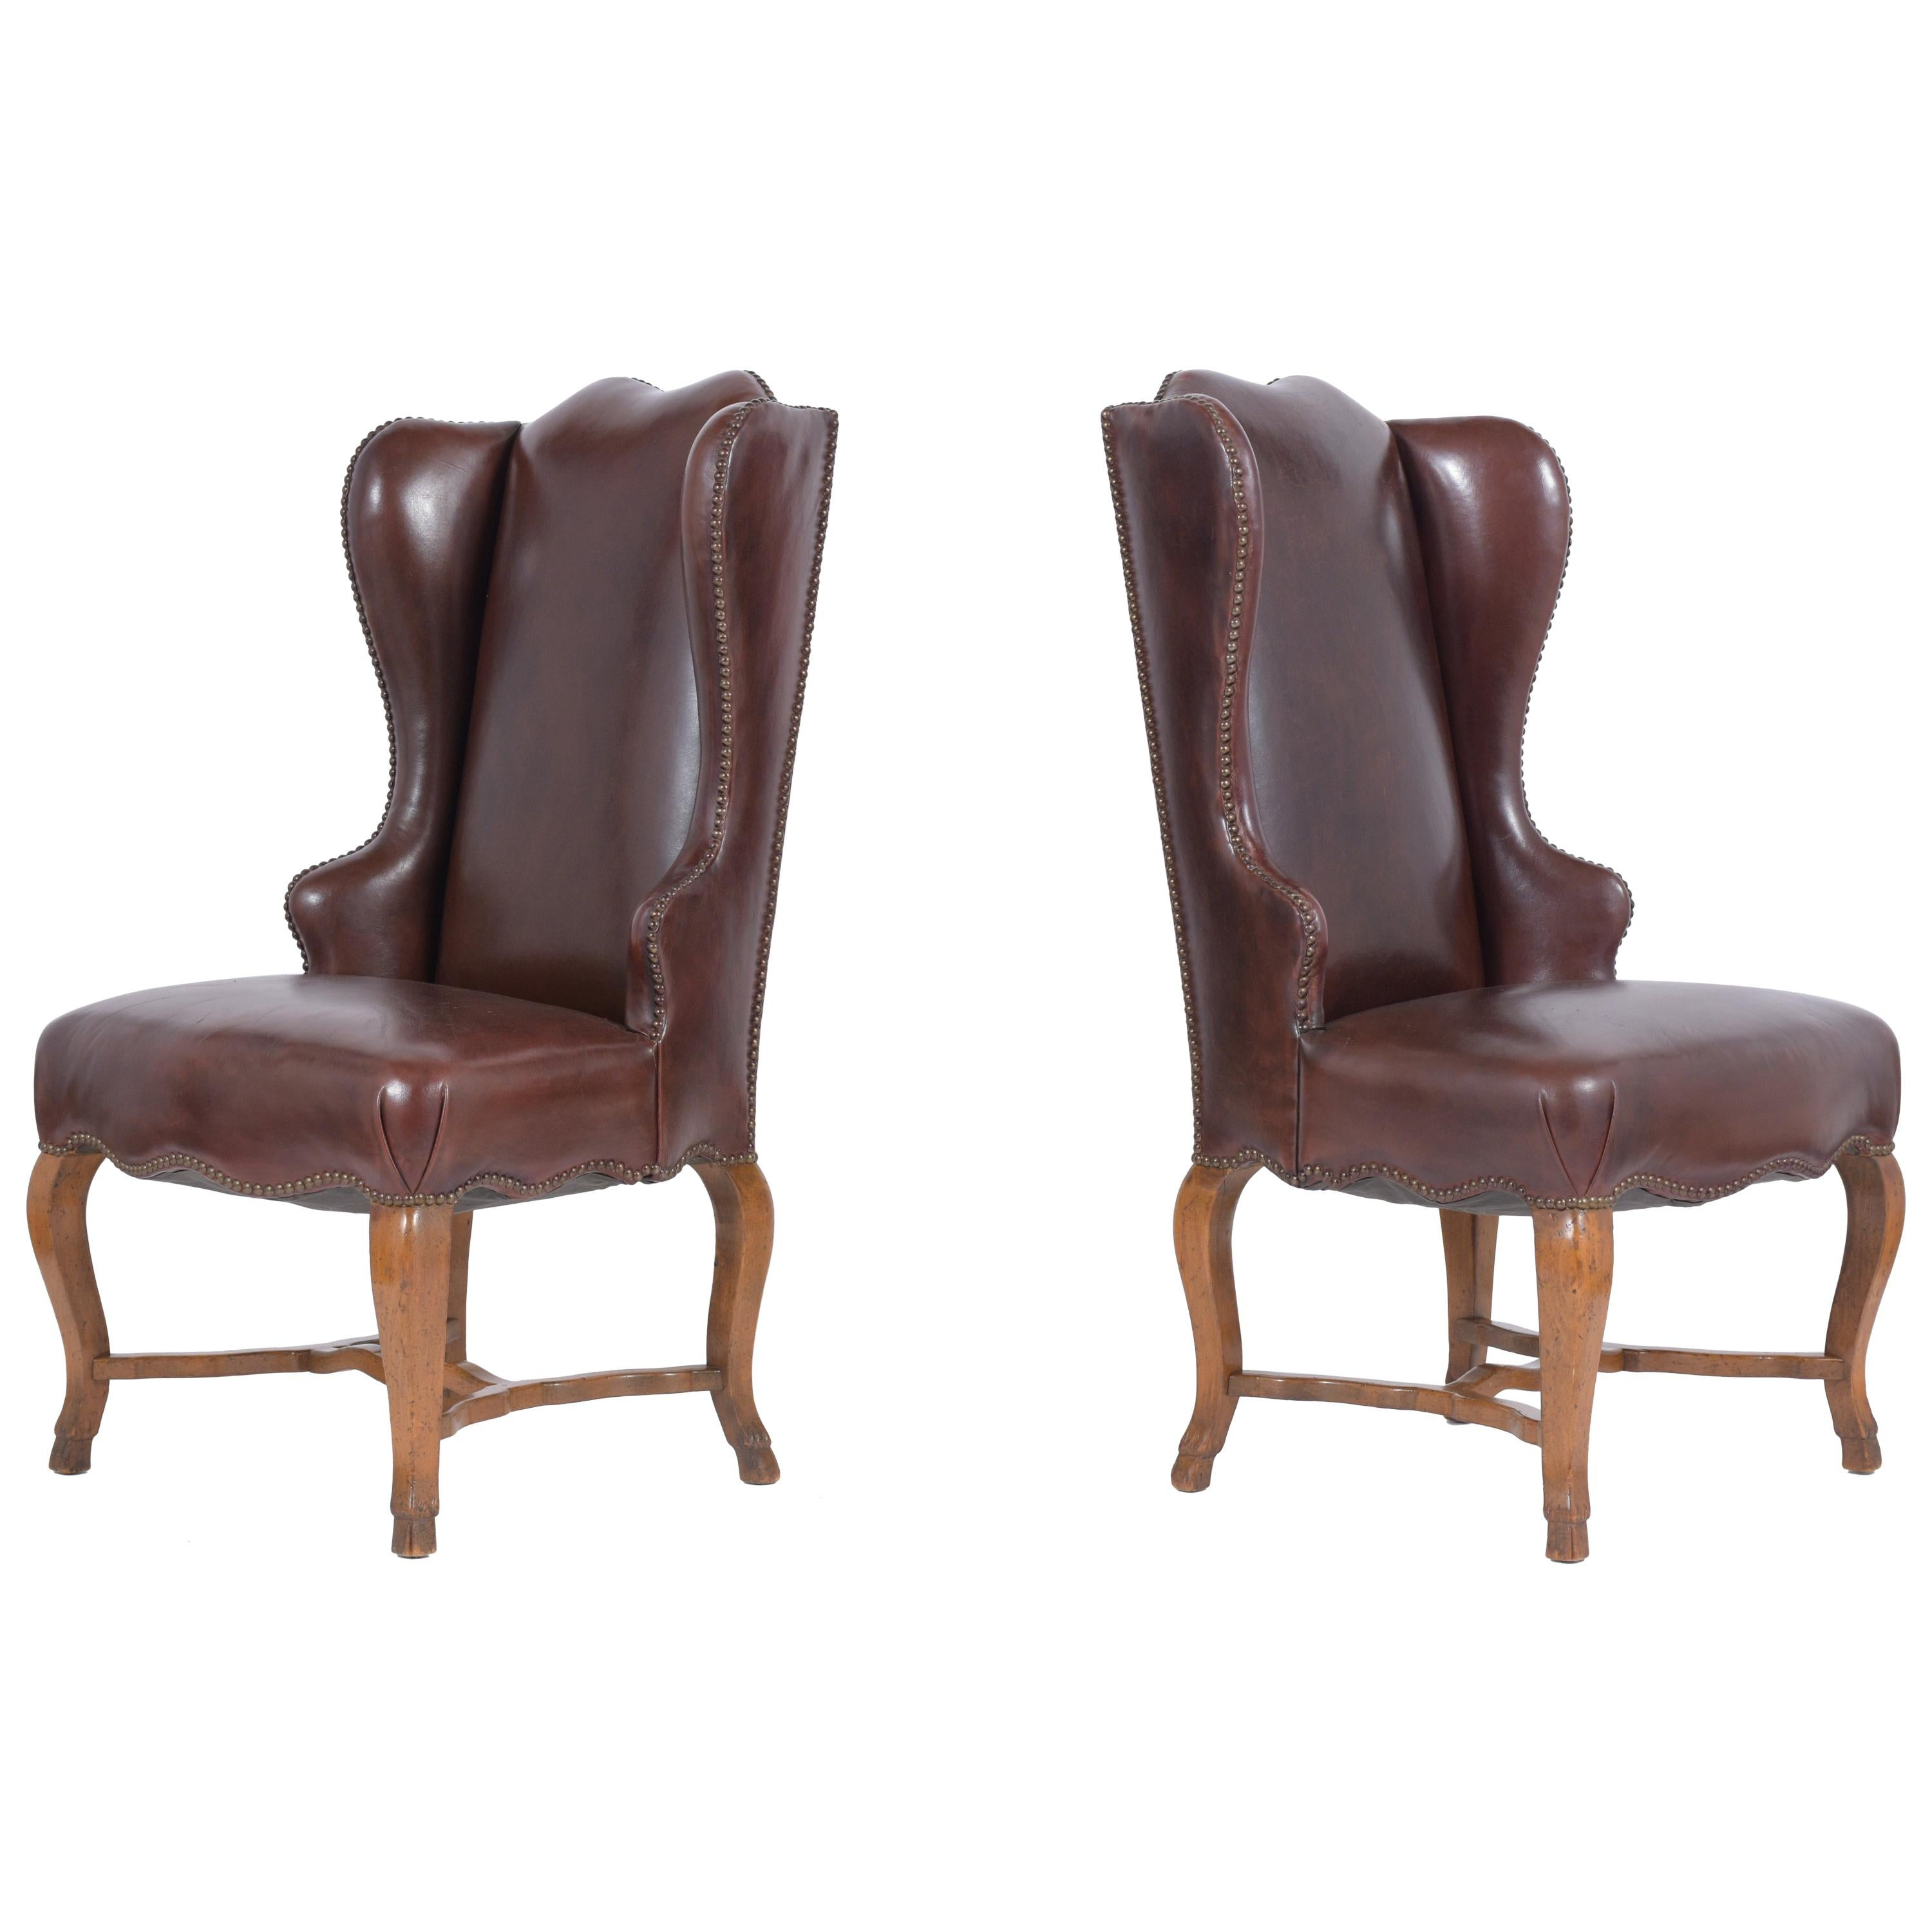 Pair of Antique Wingback Chairs